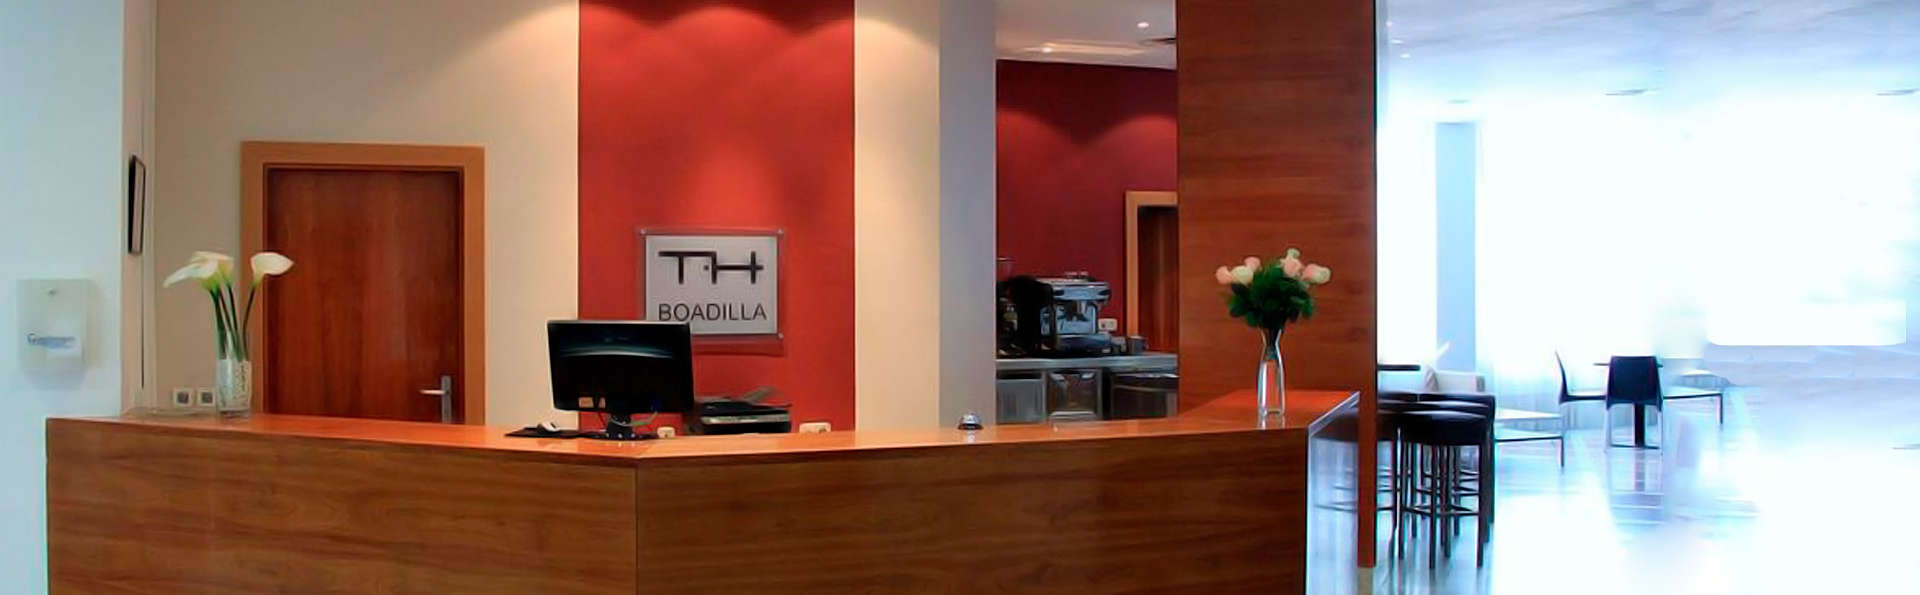 Turihotel Boadilla - edit_reception.jpg